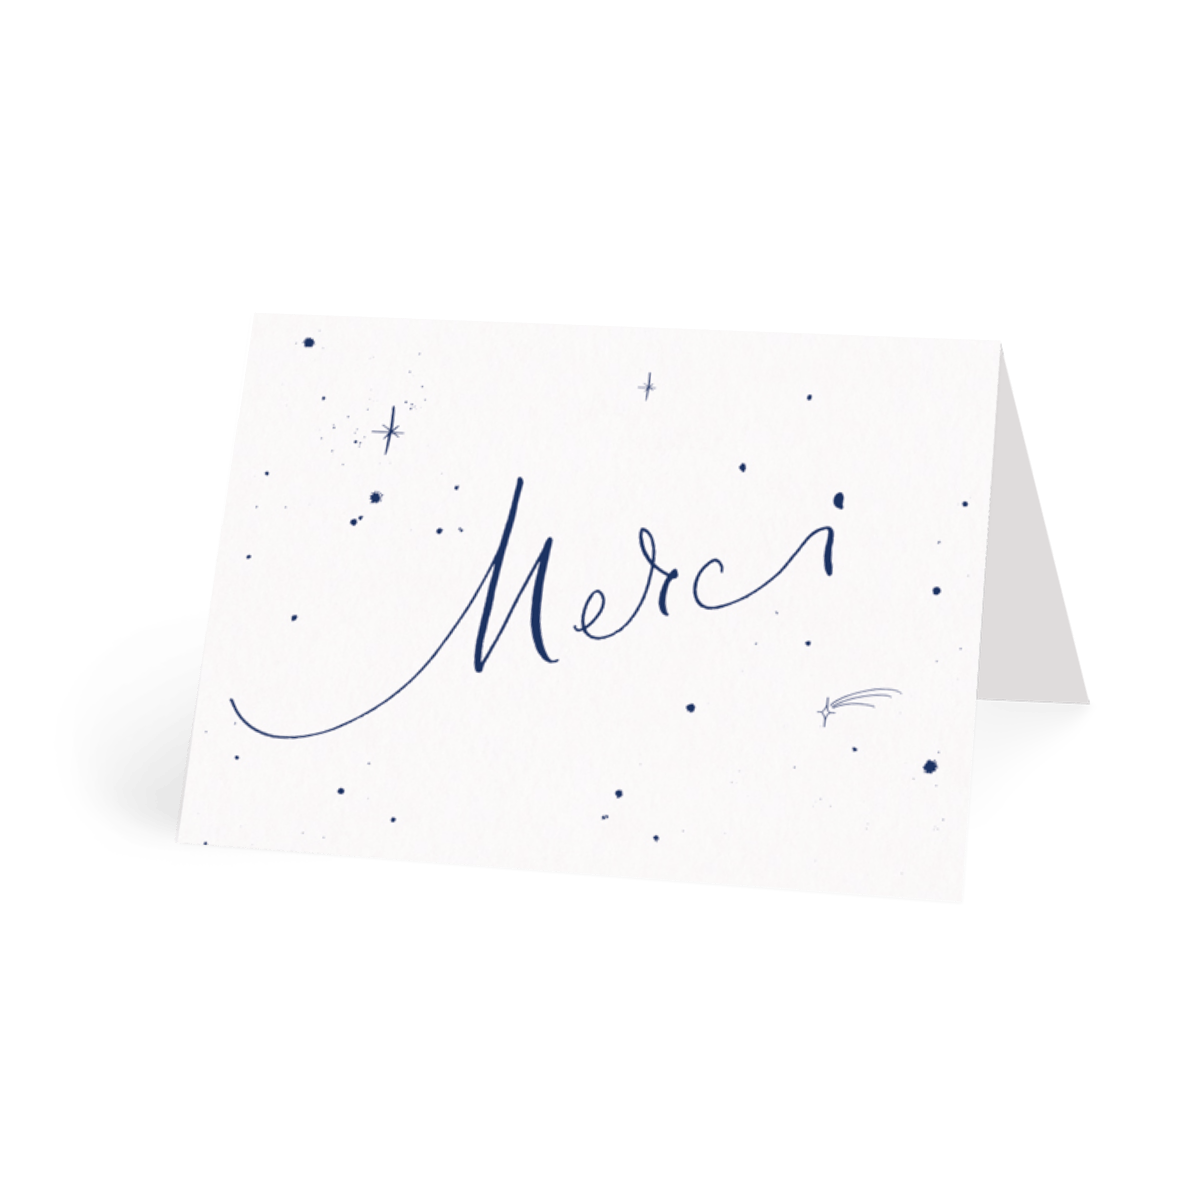 Https%3a%2f%2fwww.papier.com%2fproduct image%2f32319%2f14%2fmerci starry navy 8112 front 1513705667.png?ixlib=rb 1.1